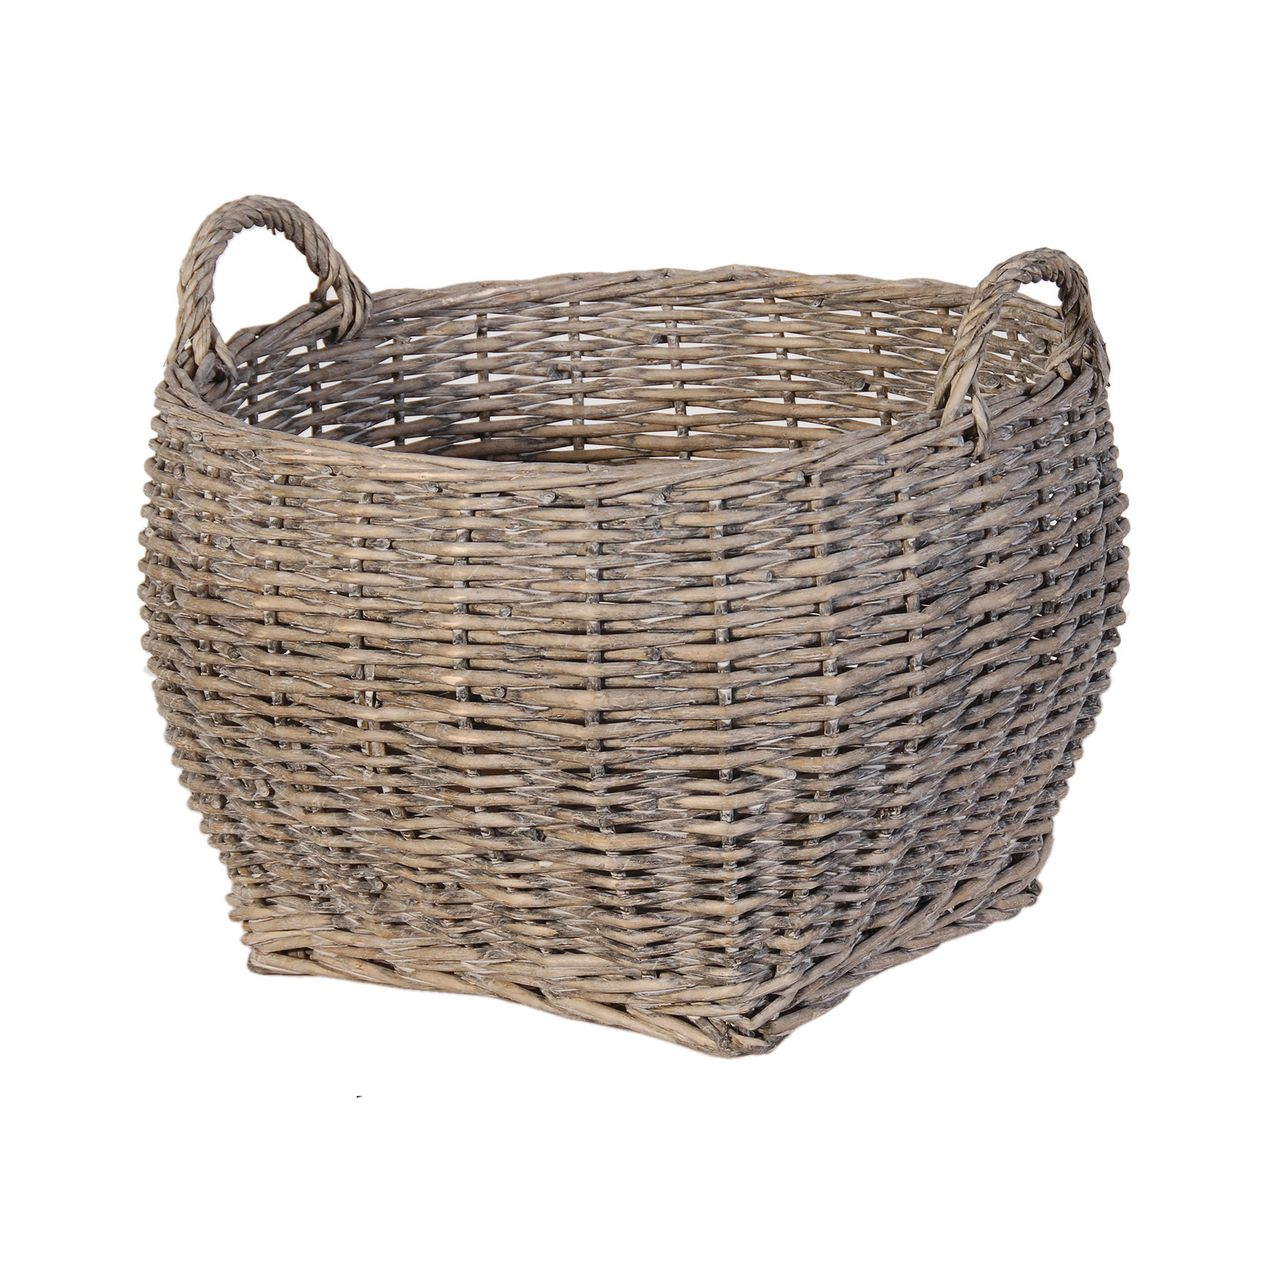 Drift Living Grey Wash Round Willow Basket 31 50 Http Driftliving Co Uk Grey Wash Round Willow Baske